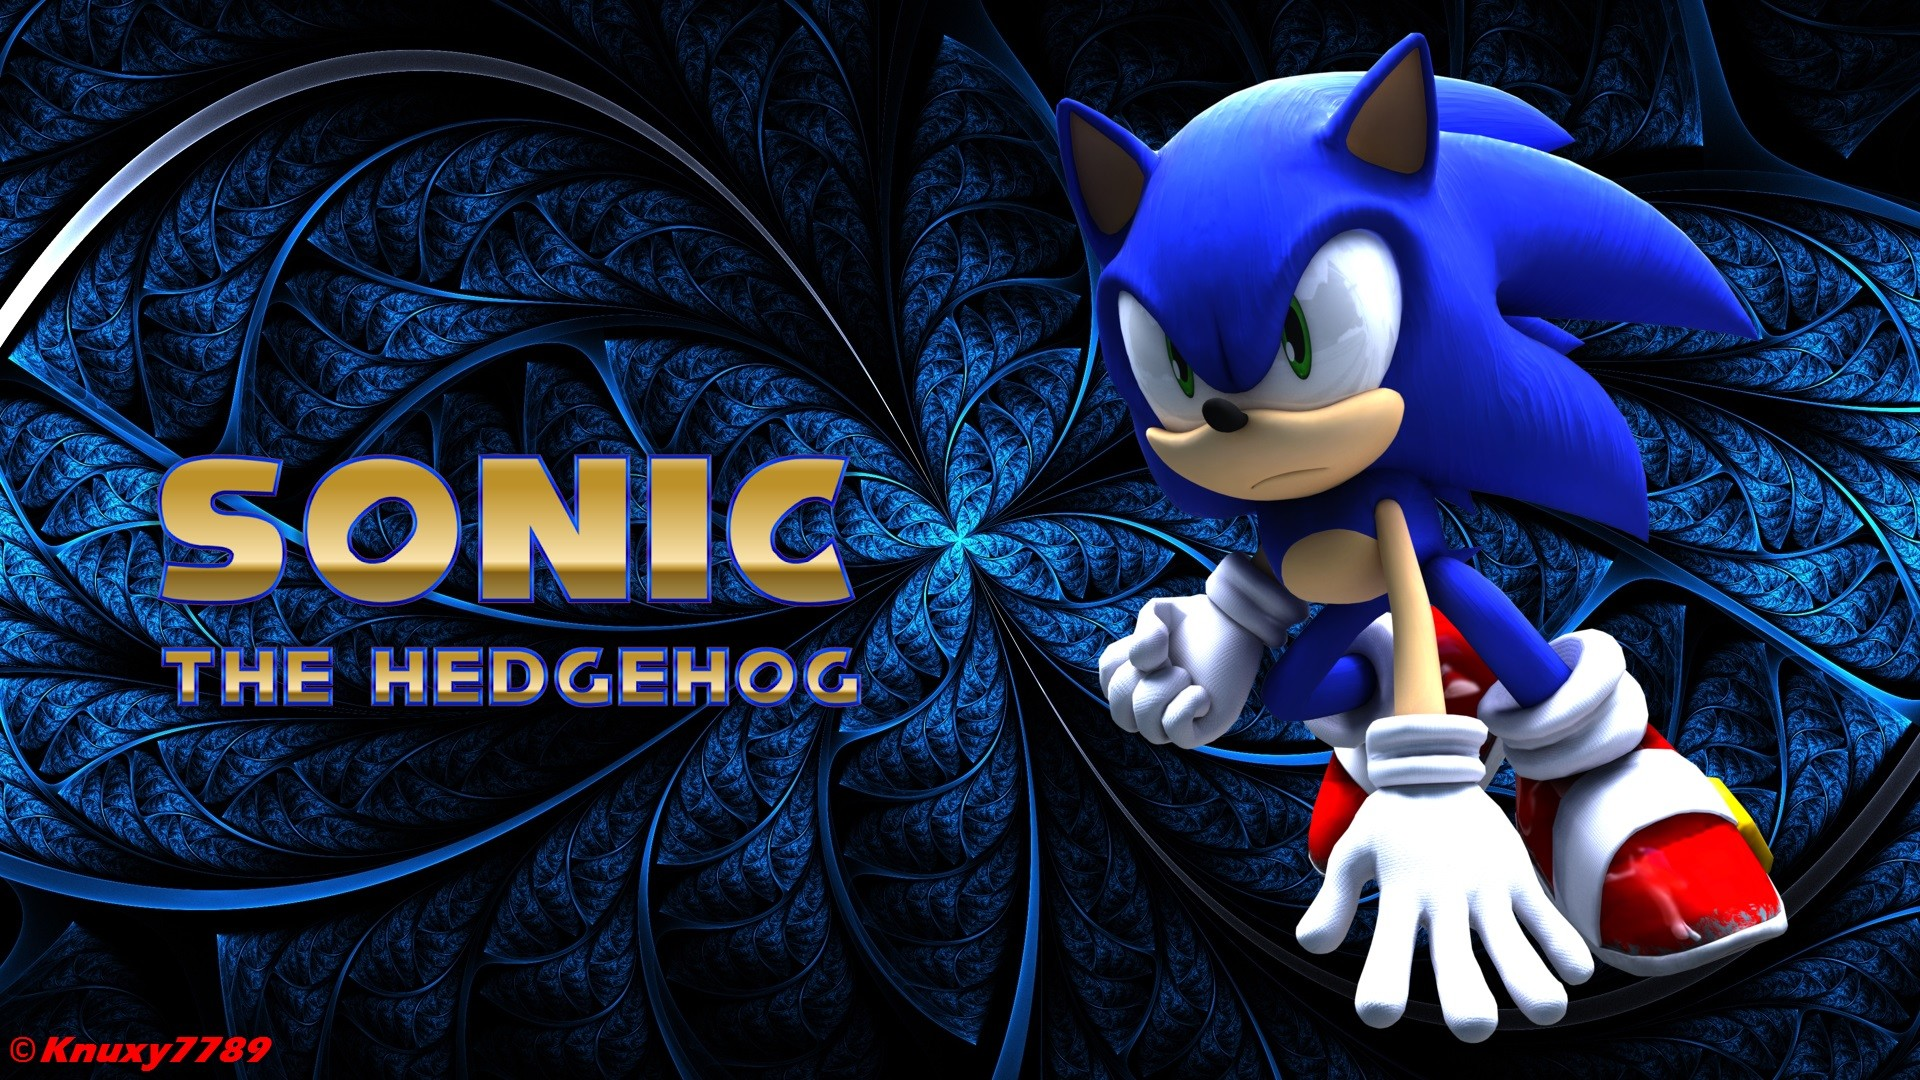 … Sonic the Hedgehog – Wallpaper[3] by Knuxy7789